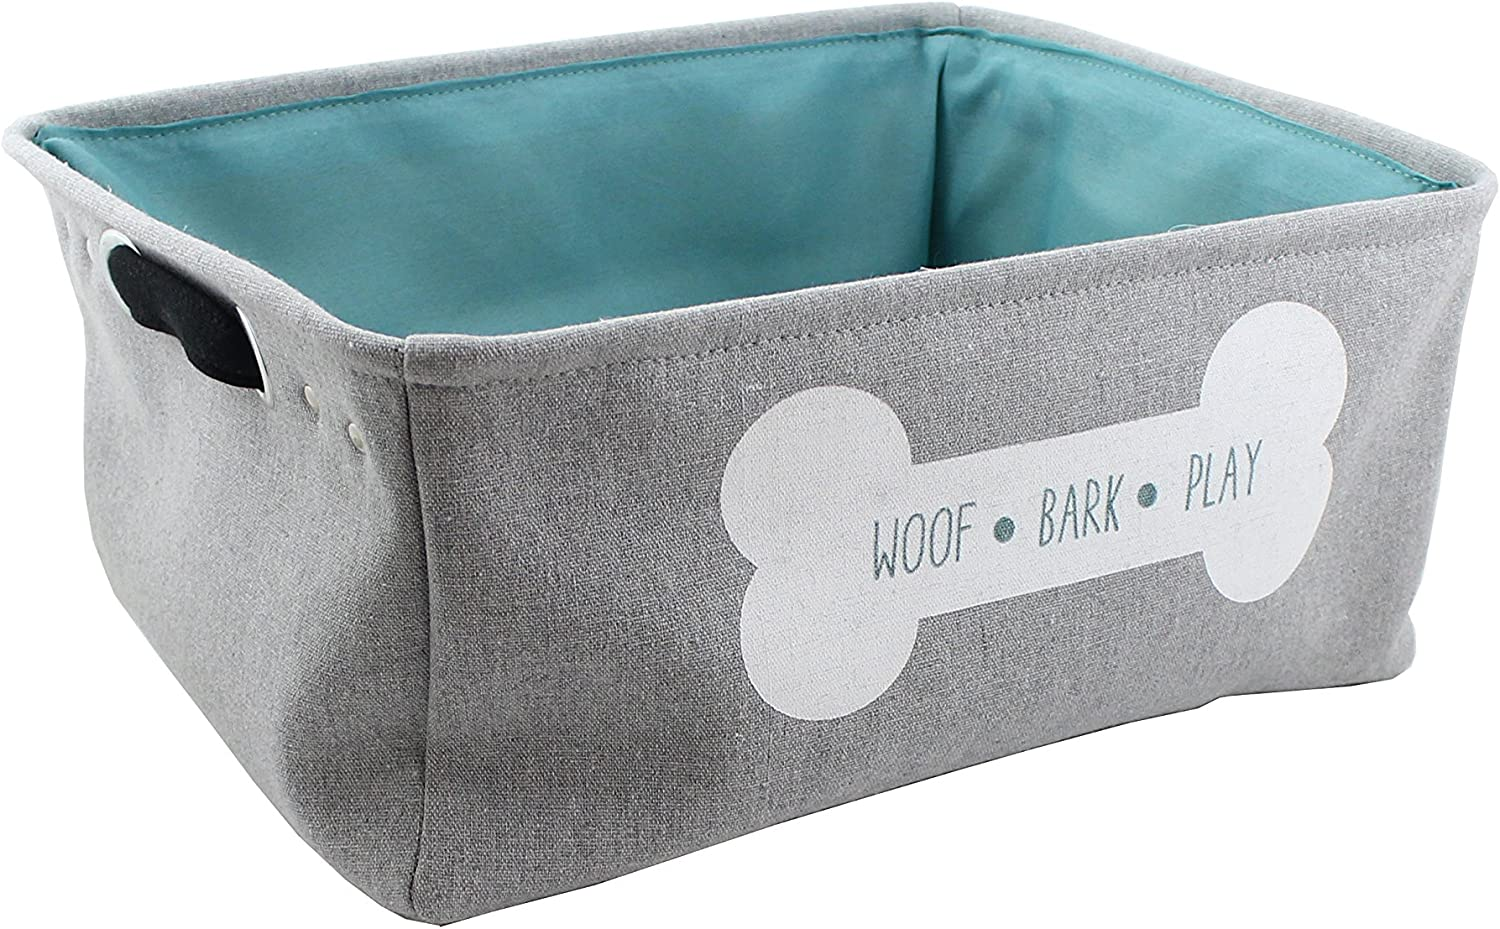 """Winifred & Lily Pet Toy and Accessory Storage Bin, Organizer Storage Basket for Pet Toys, Blankets, Leashes and Food in Embroidered """"Woof Bark Play in Dog Bone, Grey"""